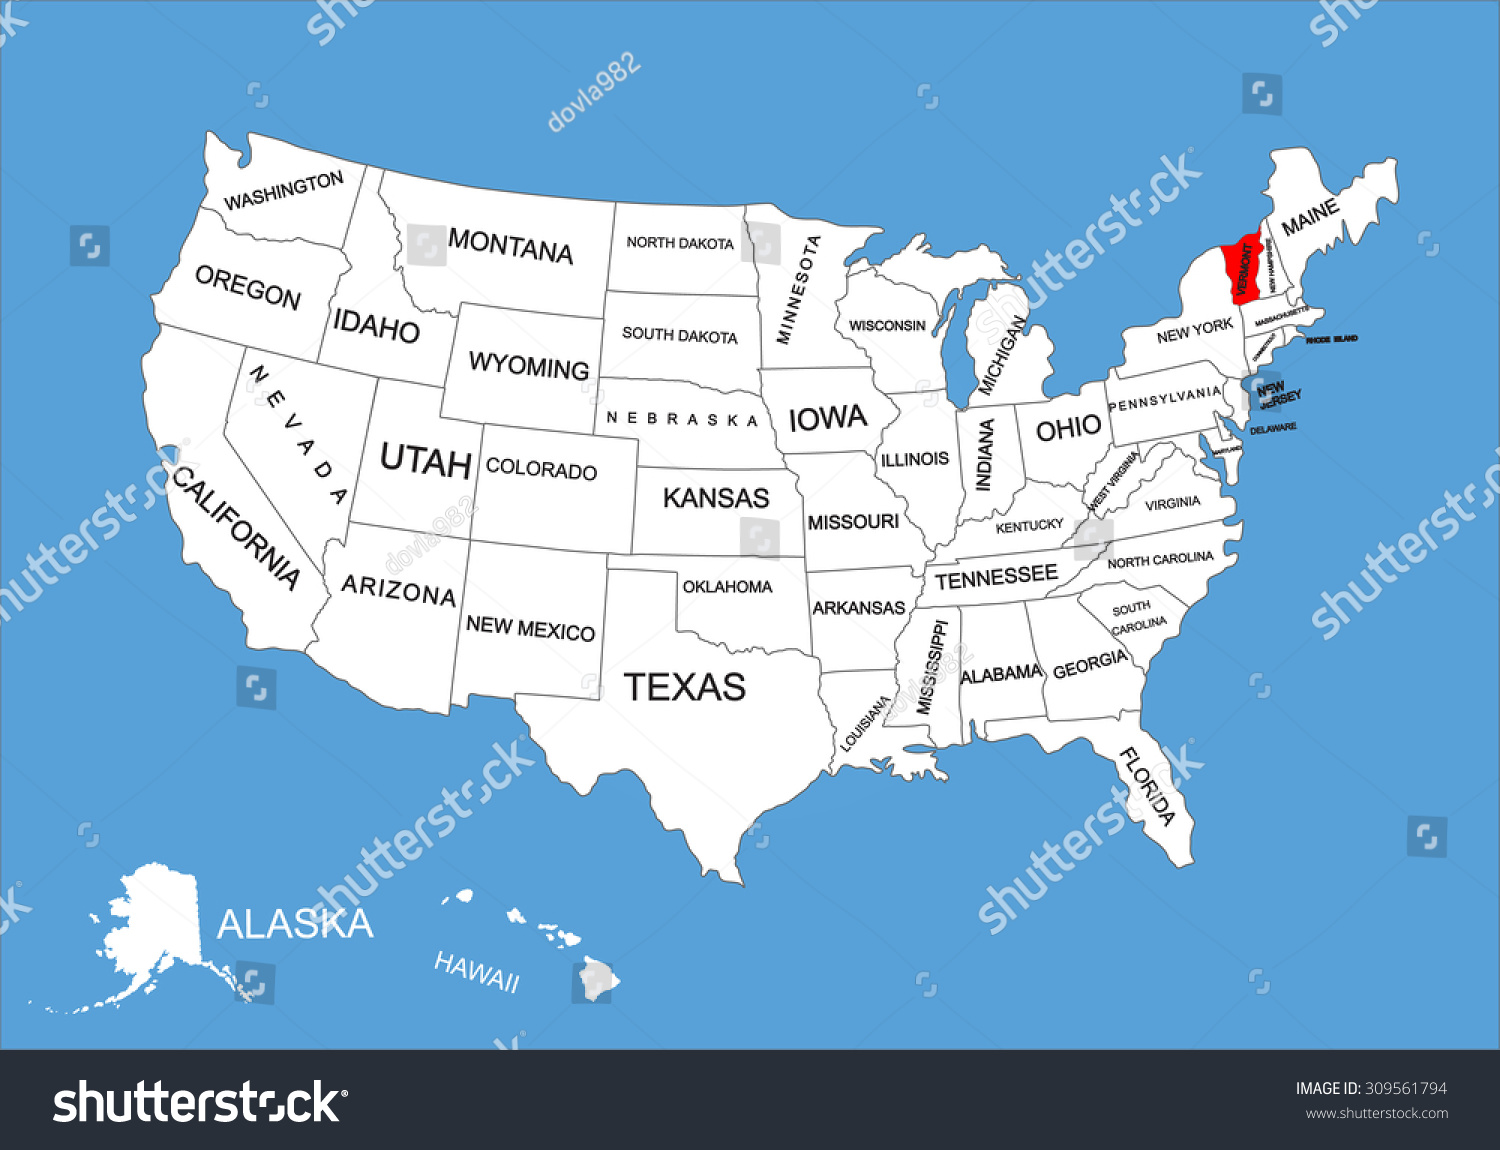 Vermont State Usa Vector Map Isolated On United States Map - Usa maps vermont